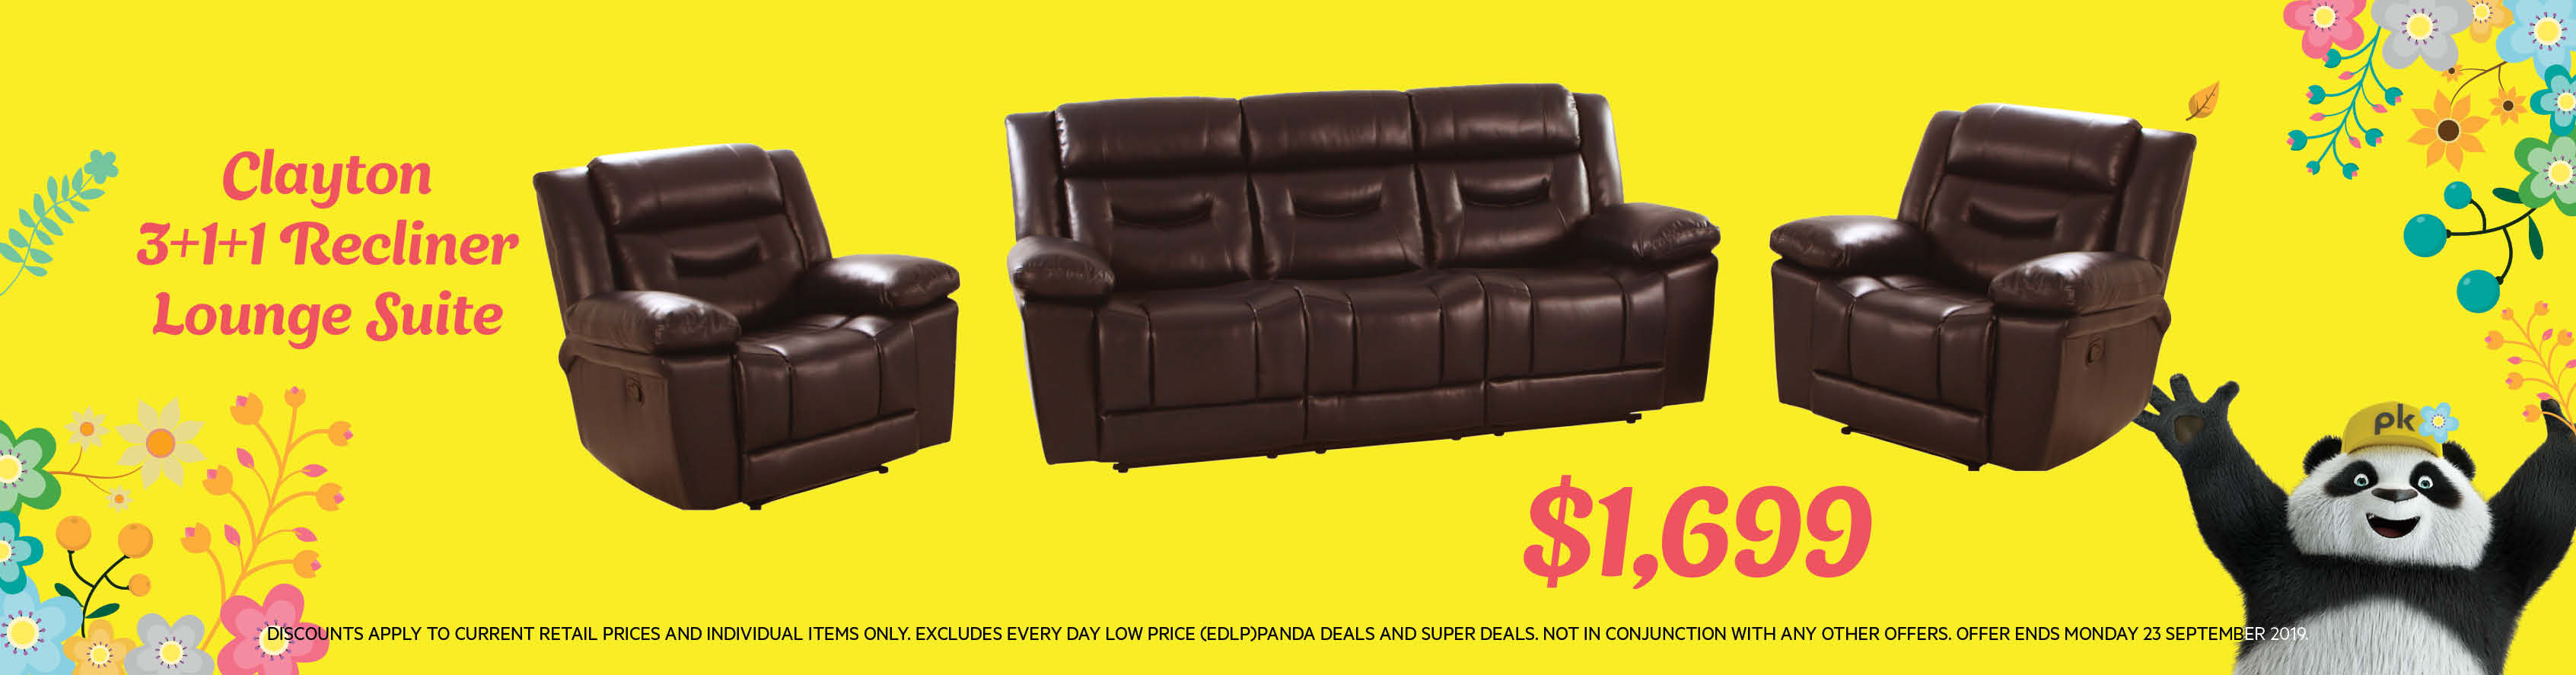 Awesome Pk Furniture Where Prices Get The Choppy Chop Chop Interior Design Ideas Clesiryabchikinfo